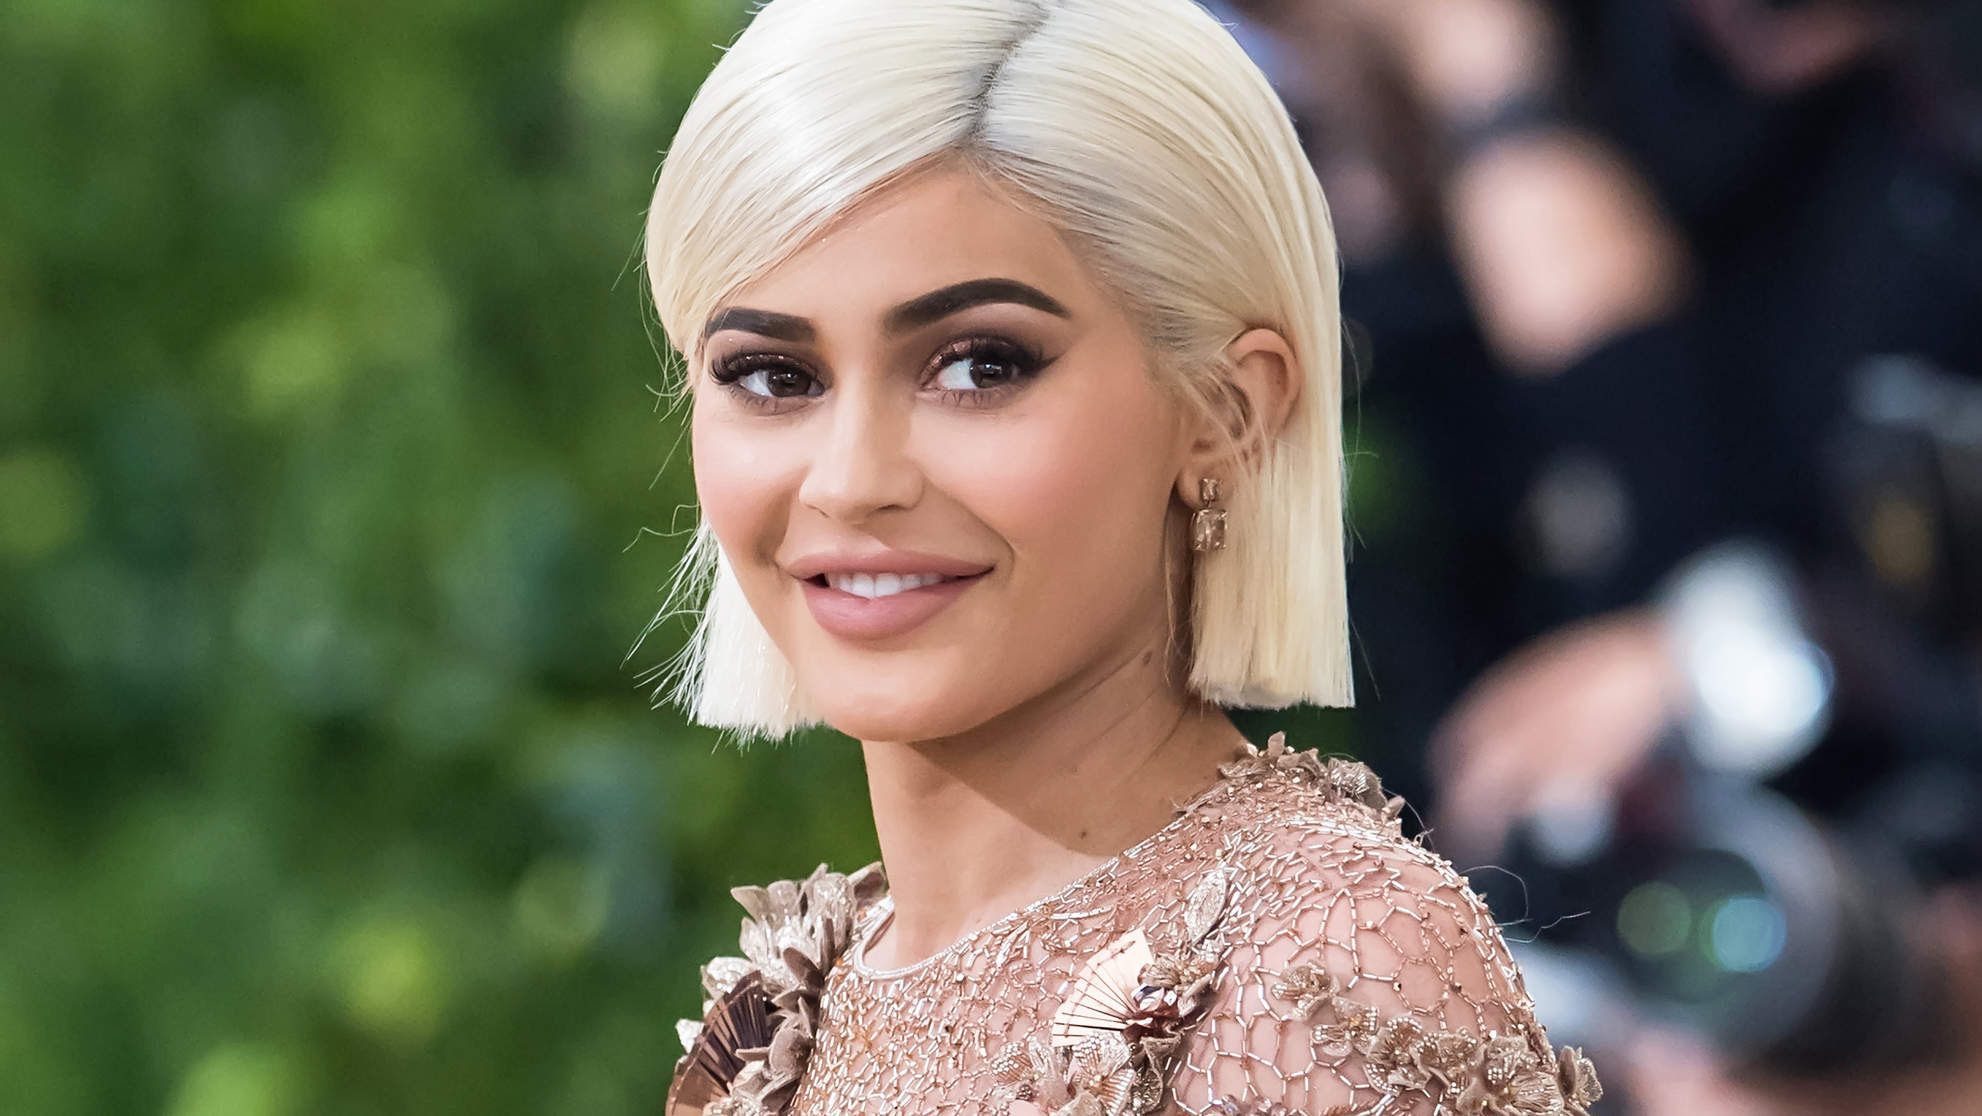 Makeup-Free Kylie Jenner Shares New Photos of Stormi as New Mom Shows Off Her Post-Baby Body